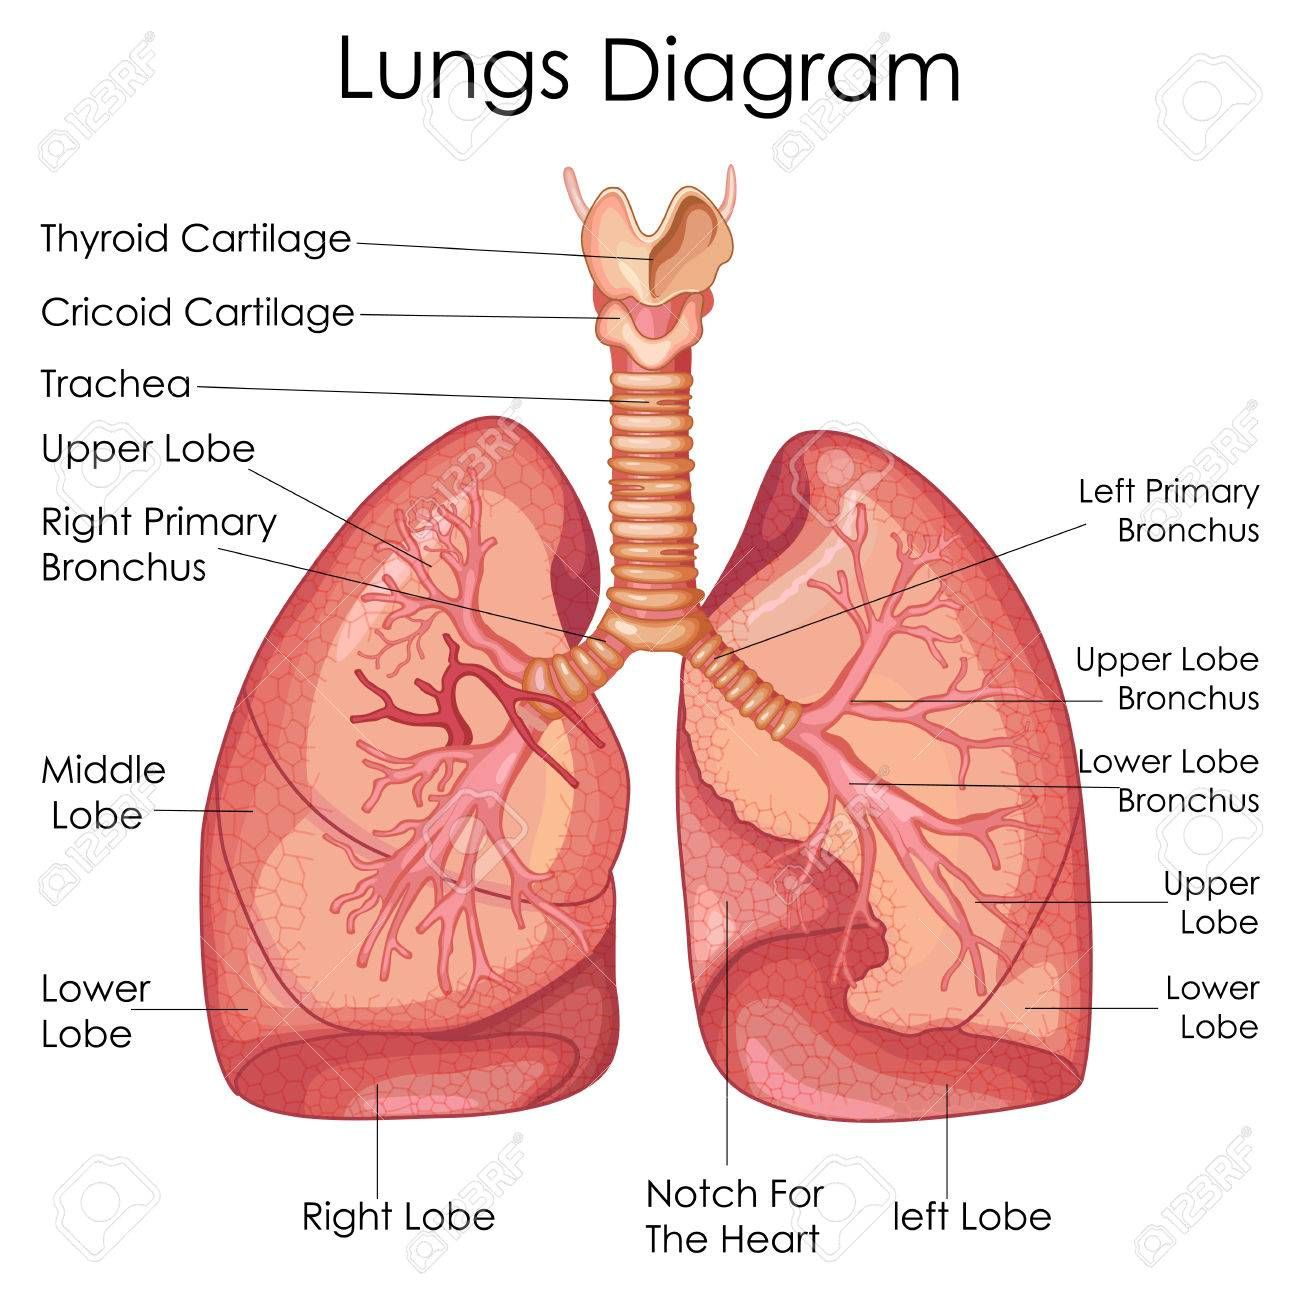 hight resolution of lungs diagram